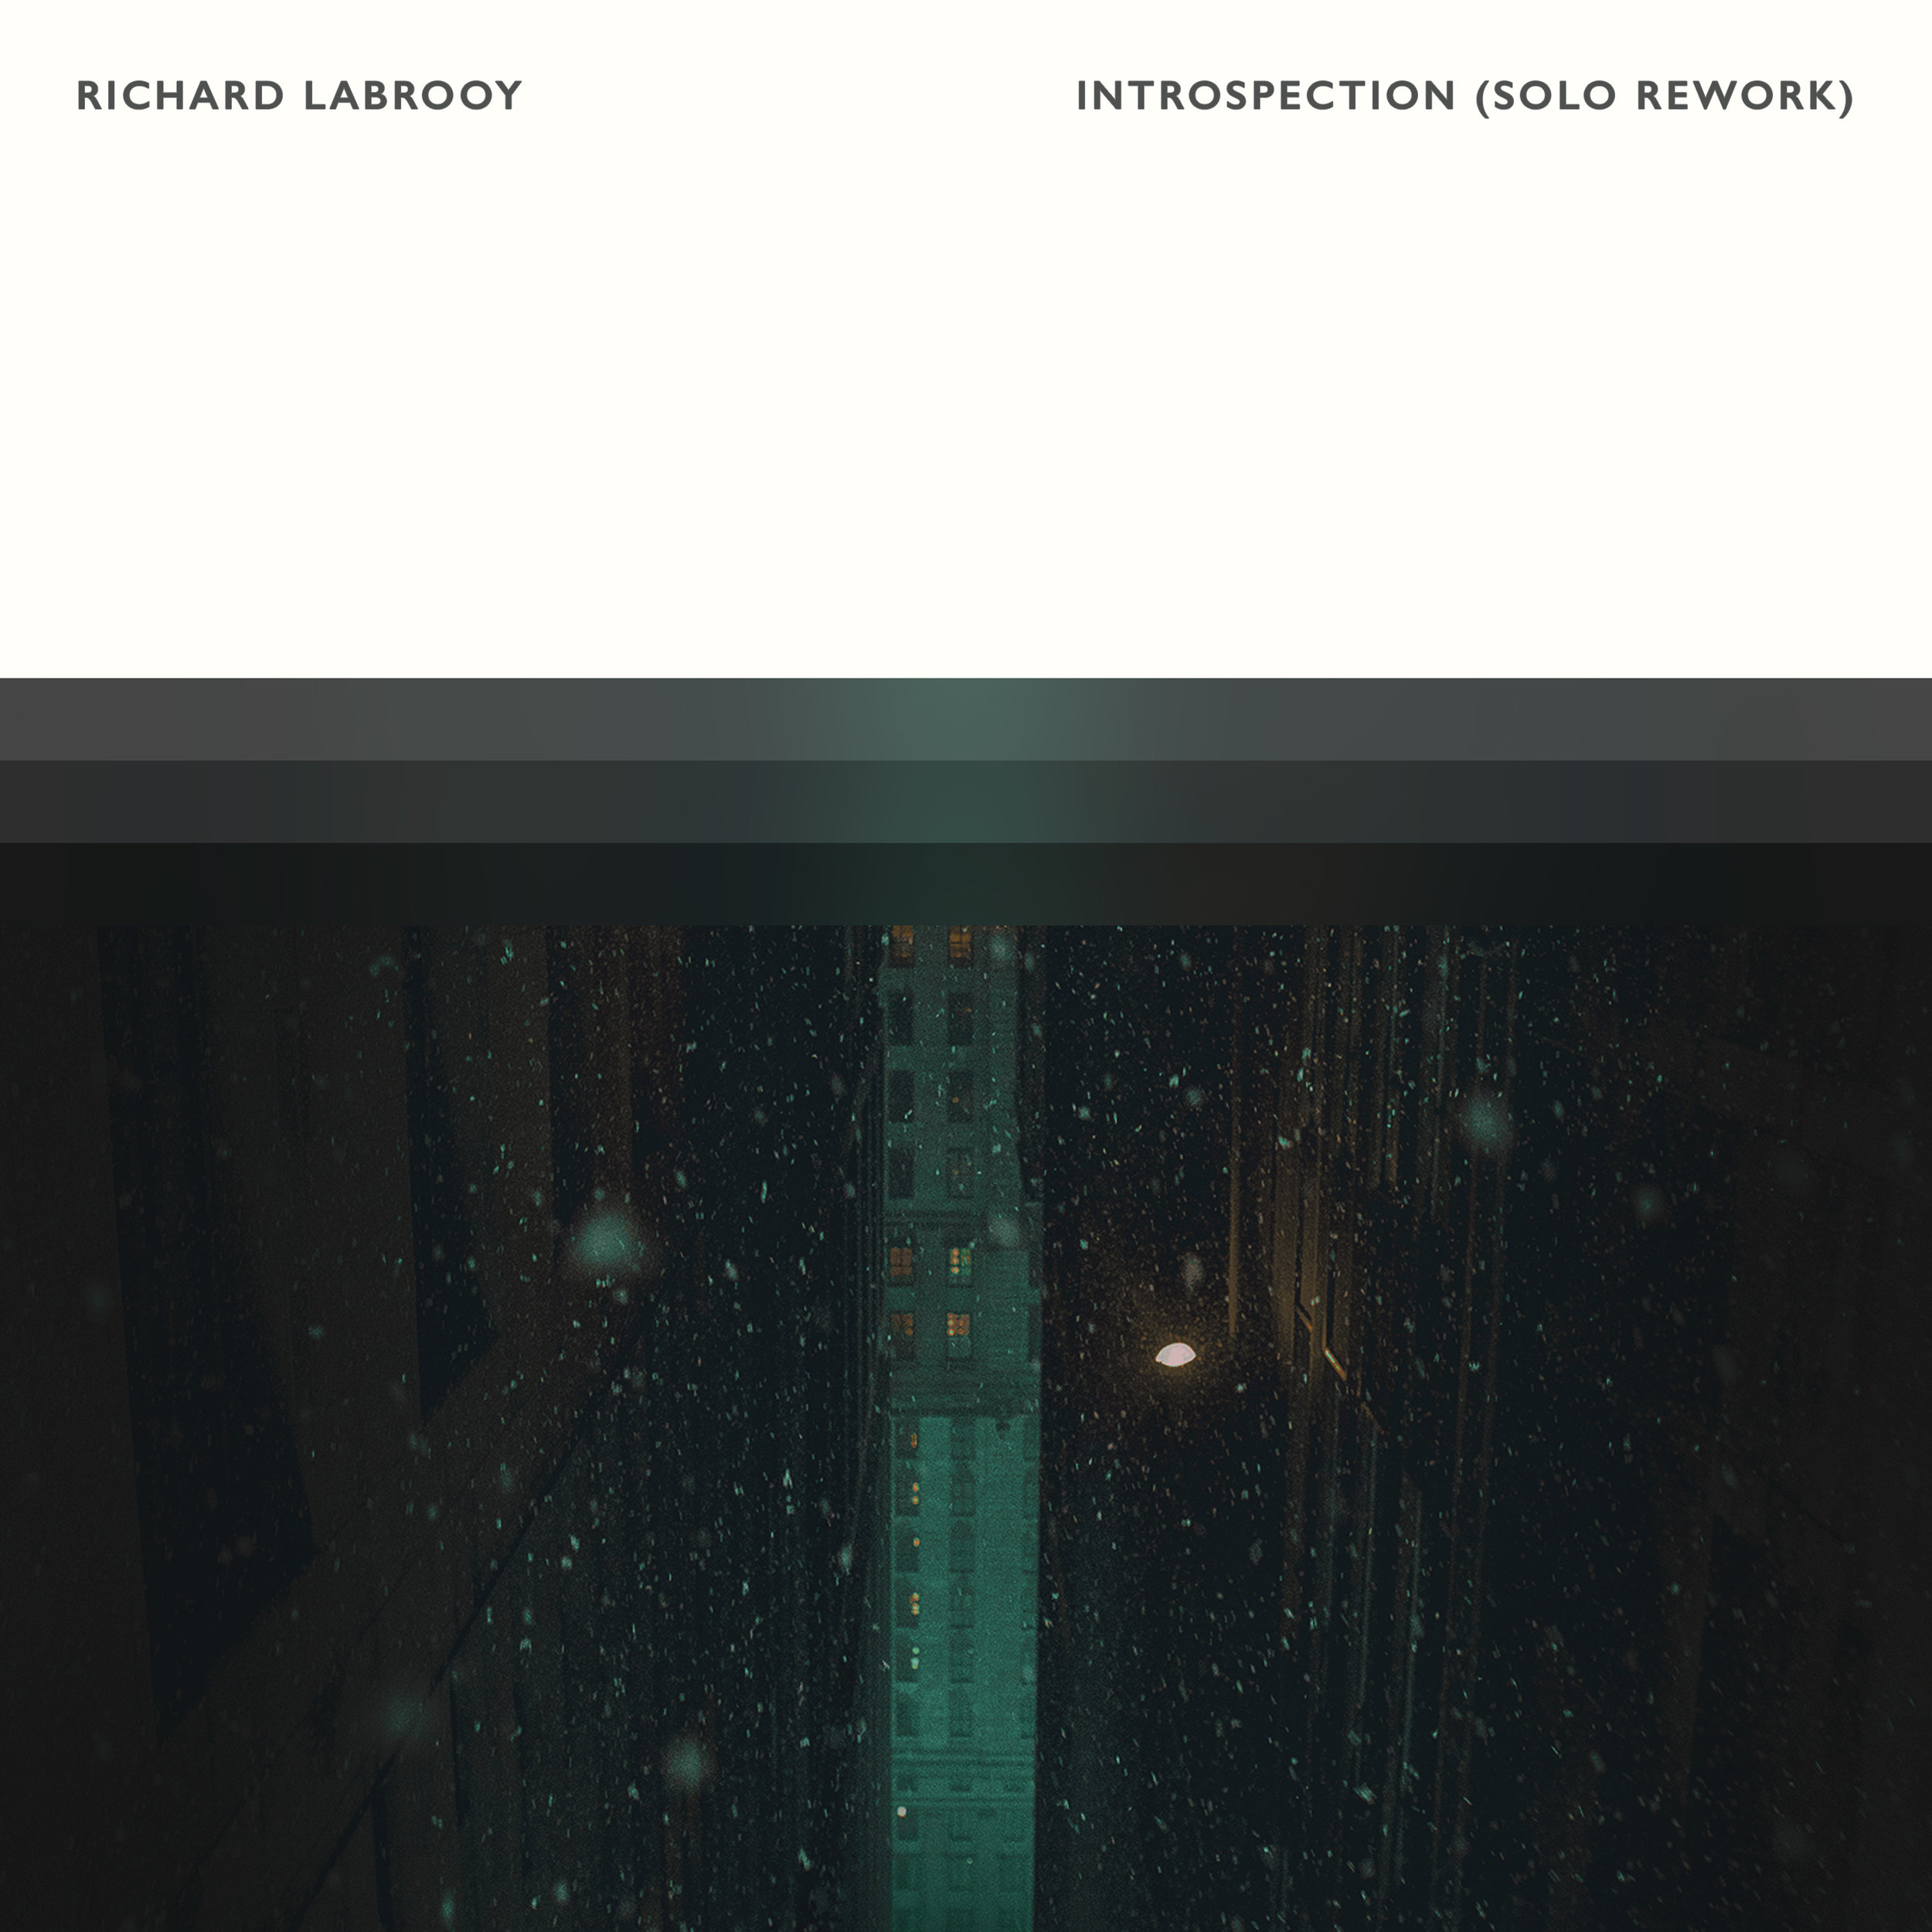 Richard Labrooy - Introspection (Solo Rework)